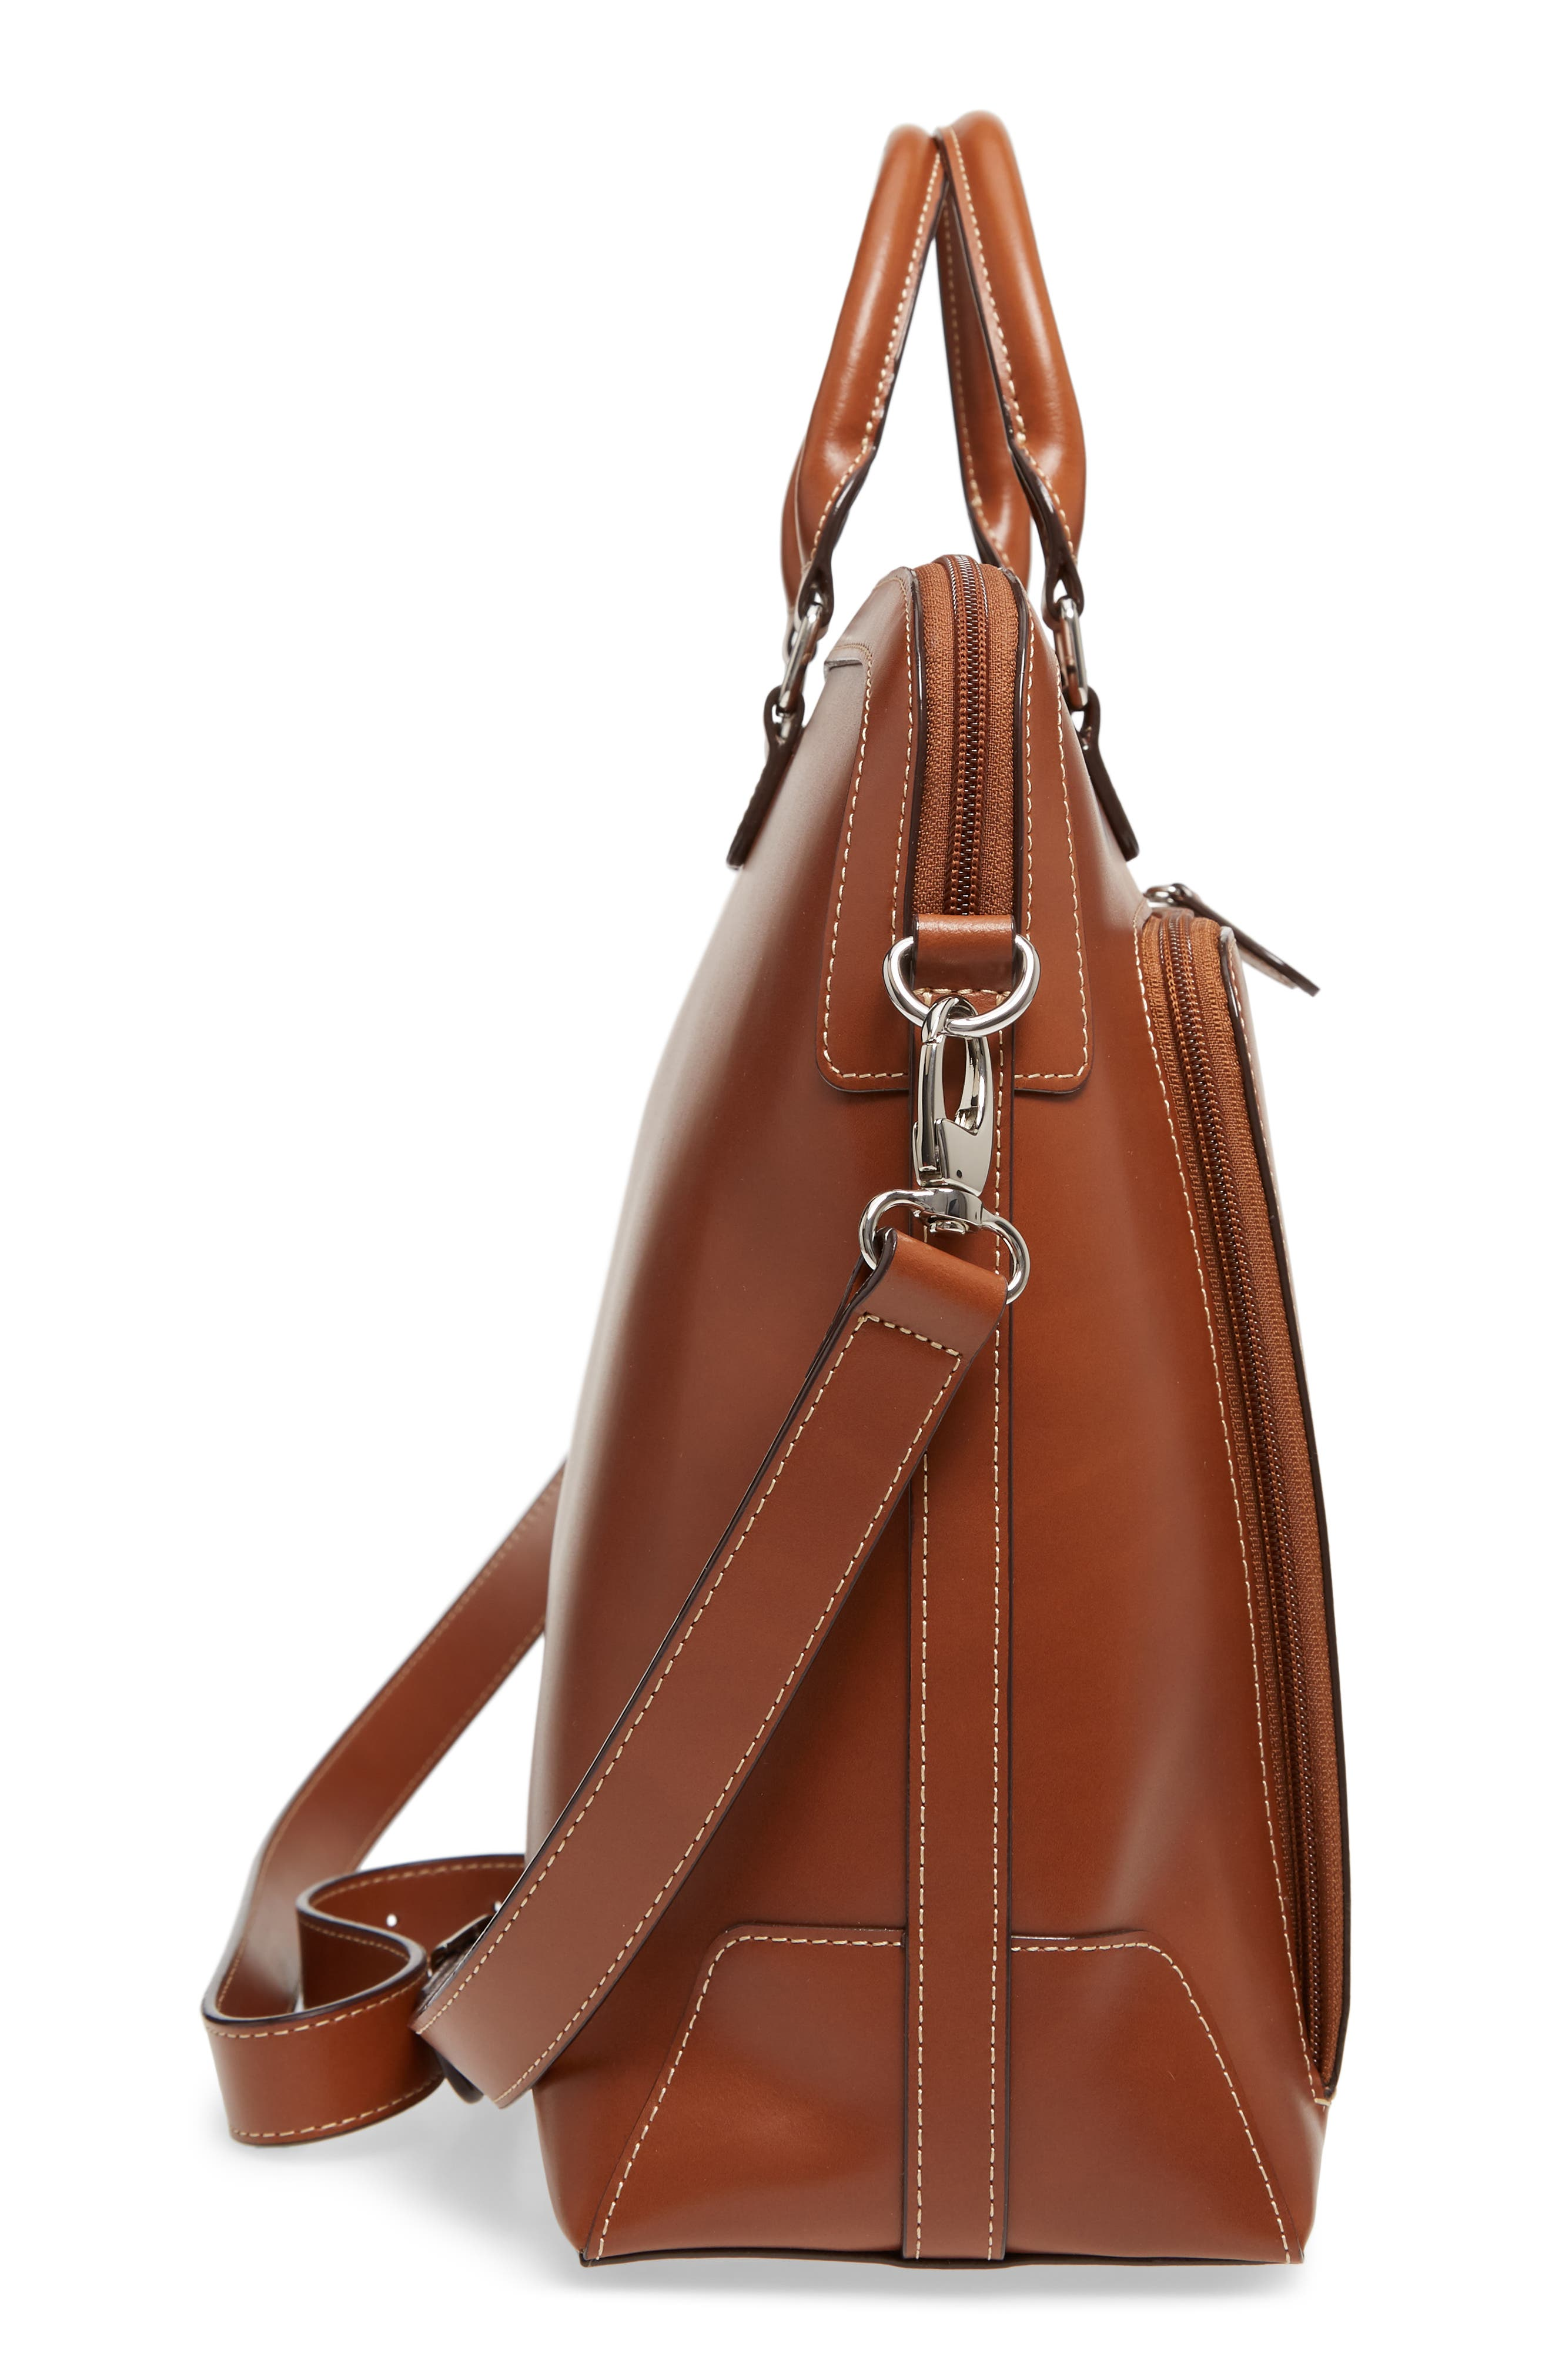 Audrey Under Lock & Key - Brera RFID Leather Briefcase,                             Alternate thumbnail 5, color,                             Sequoia/ Papaya